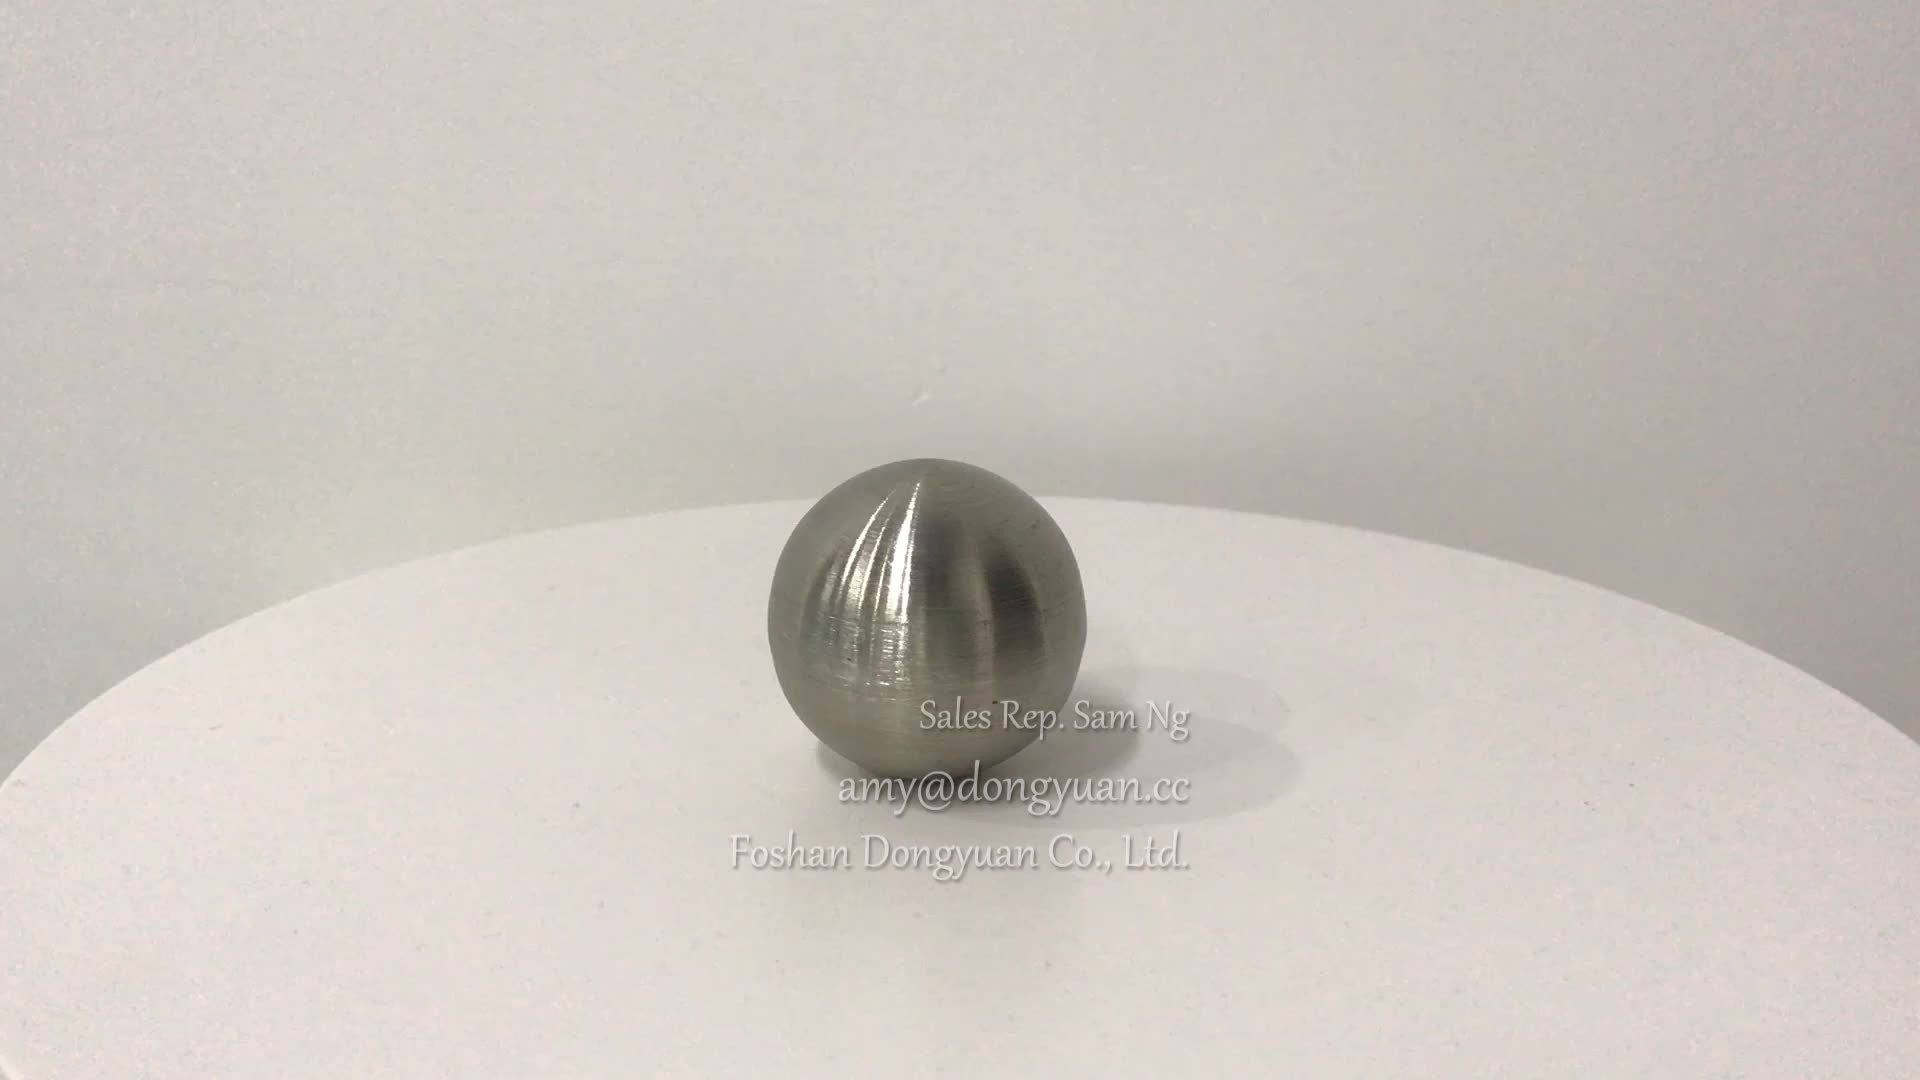 Small Stainless Steel Hollow Spheres/Balls with Matt Brushed Finish for Furniture